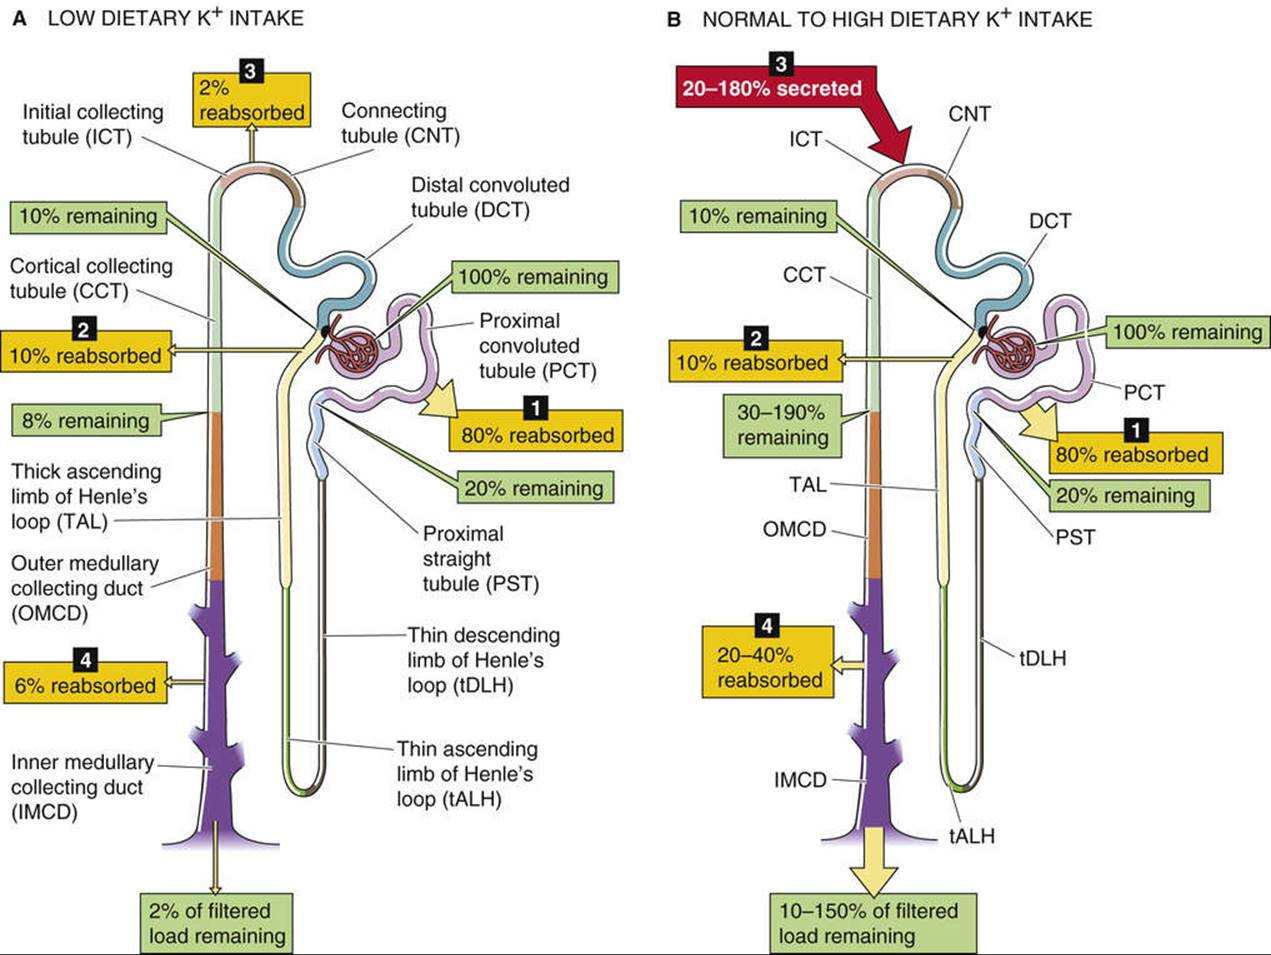 Potassium transport by different segments of the nephron figure 37 5 k handling along the nephron in a and b the numbered yellow boxes indicate the fraction of the filtered load that various nephron segments ccuart Choice Image